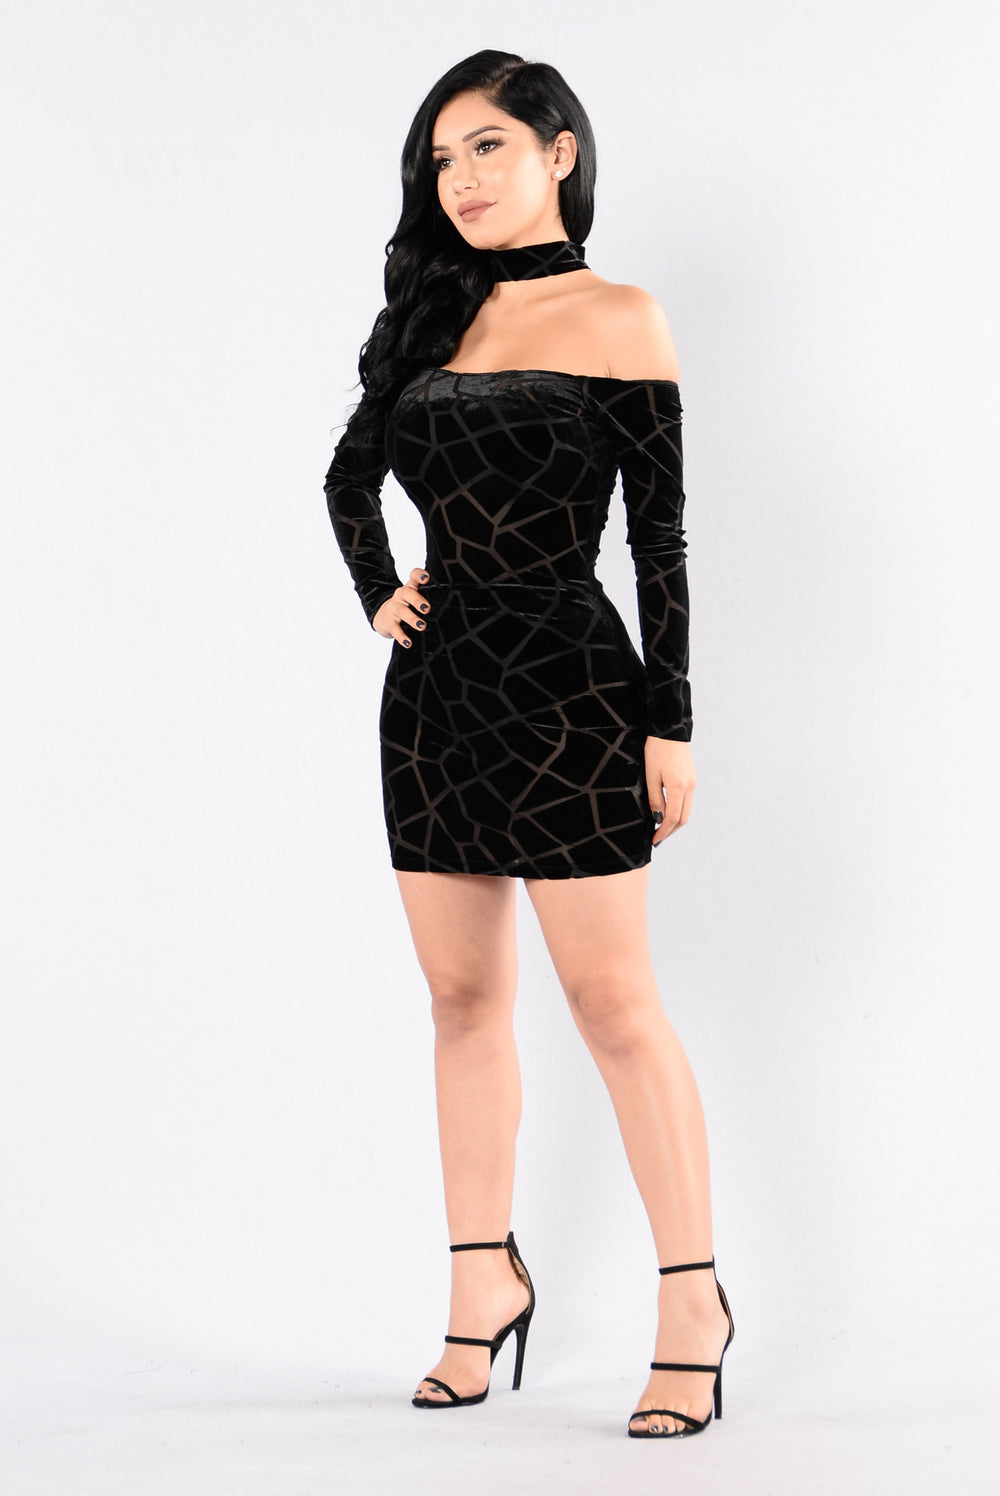 Scarlet Empress Dress - Black